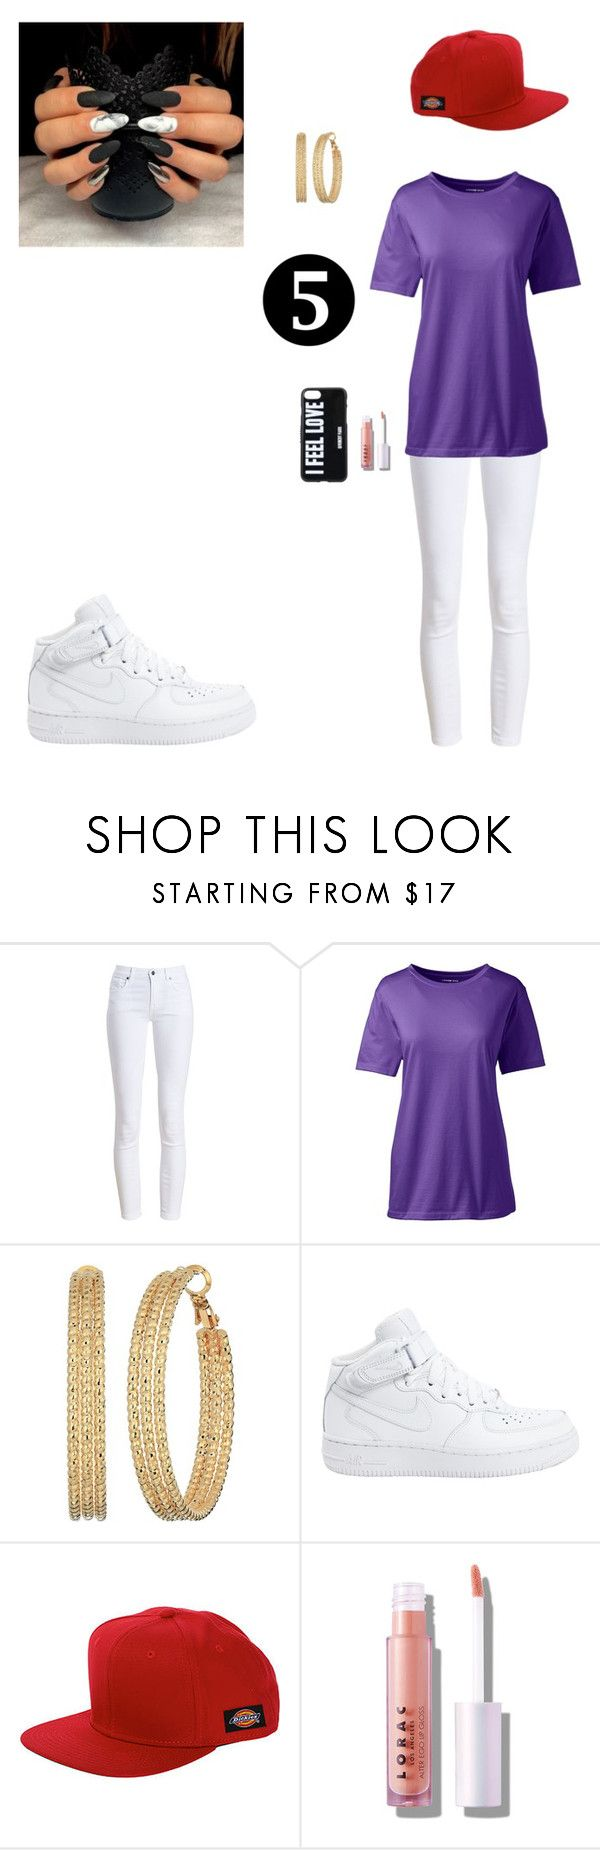 """Kids next door #5"" by bribriwiggins ❤ liked on Polyvore featuring Barbour, Lands' End, GUESS, NIKE, Dickies, LORAC and Givenchy"